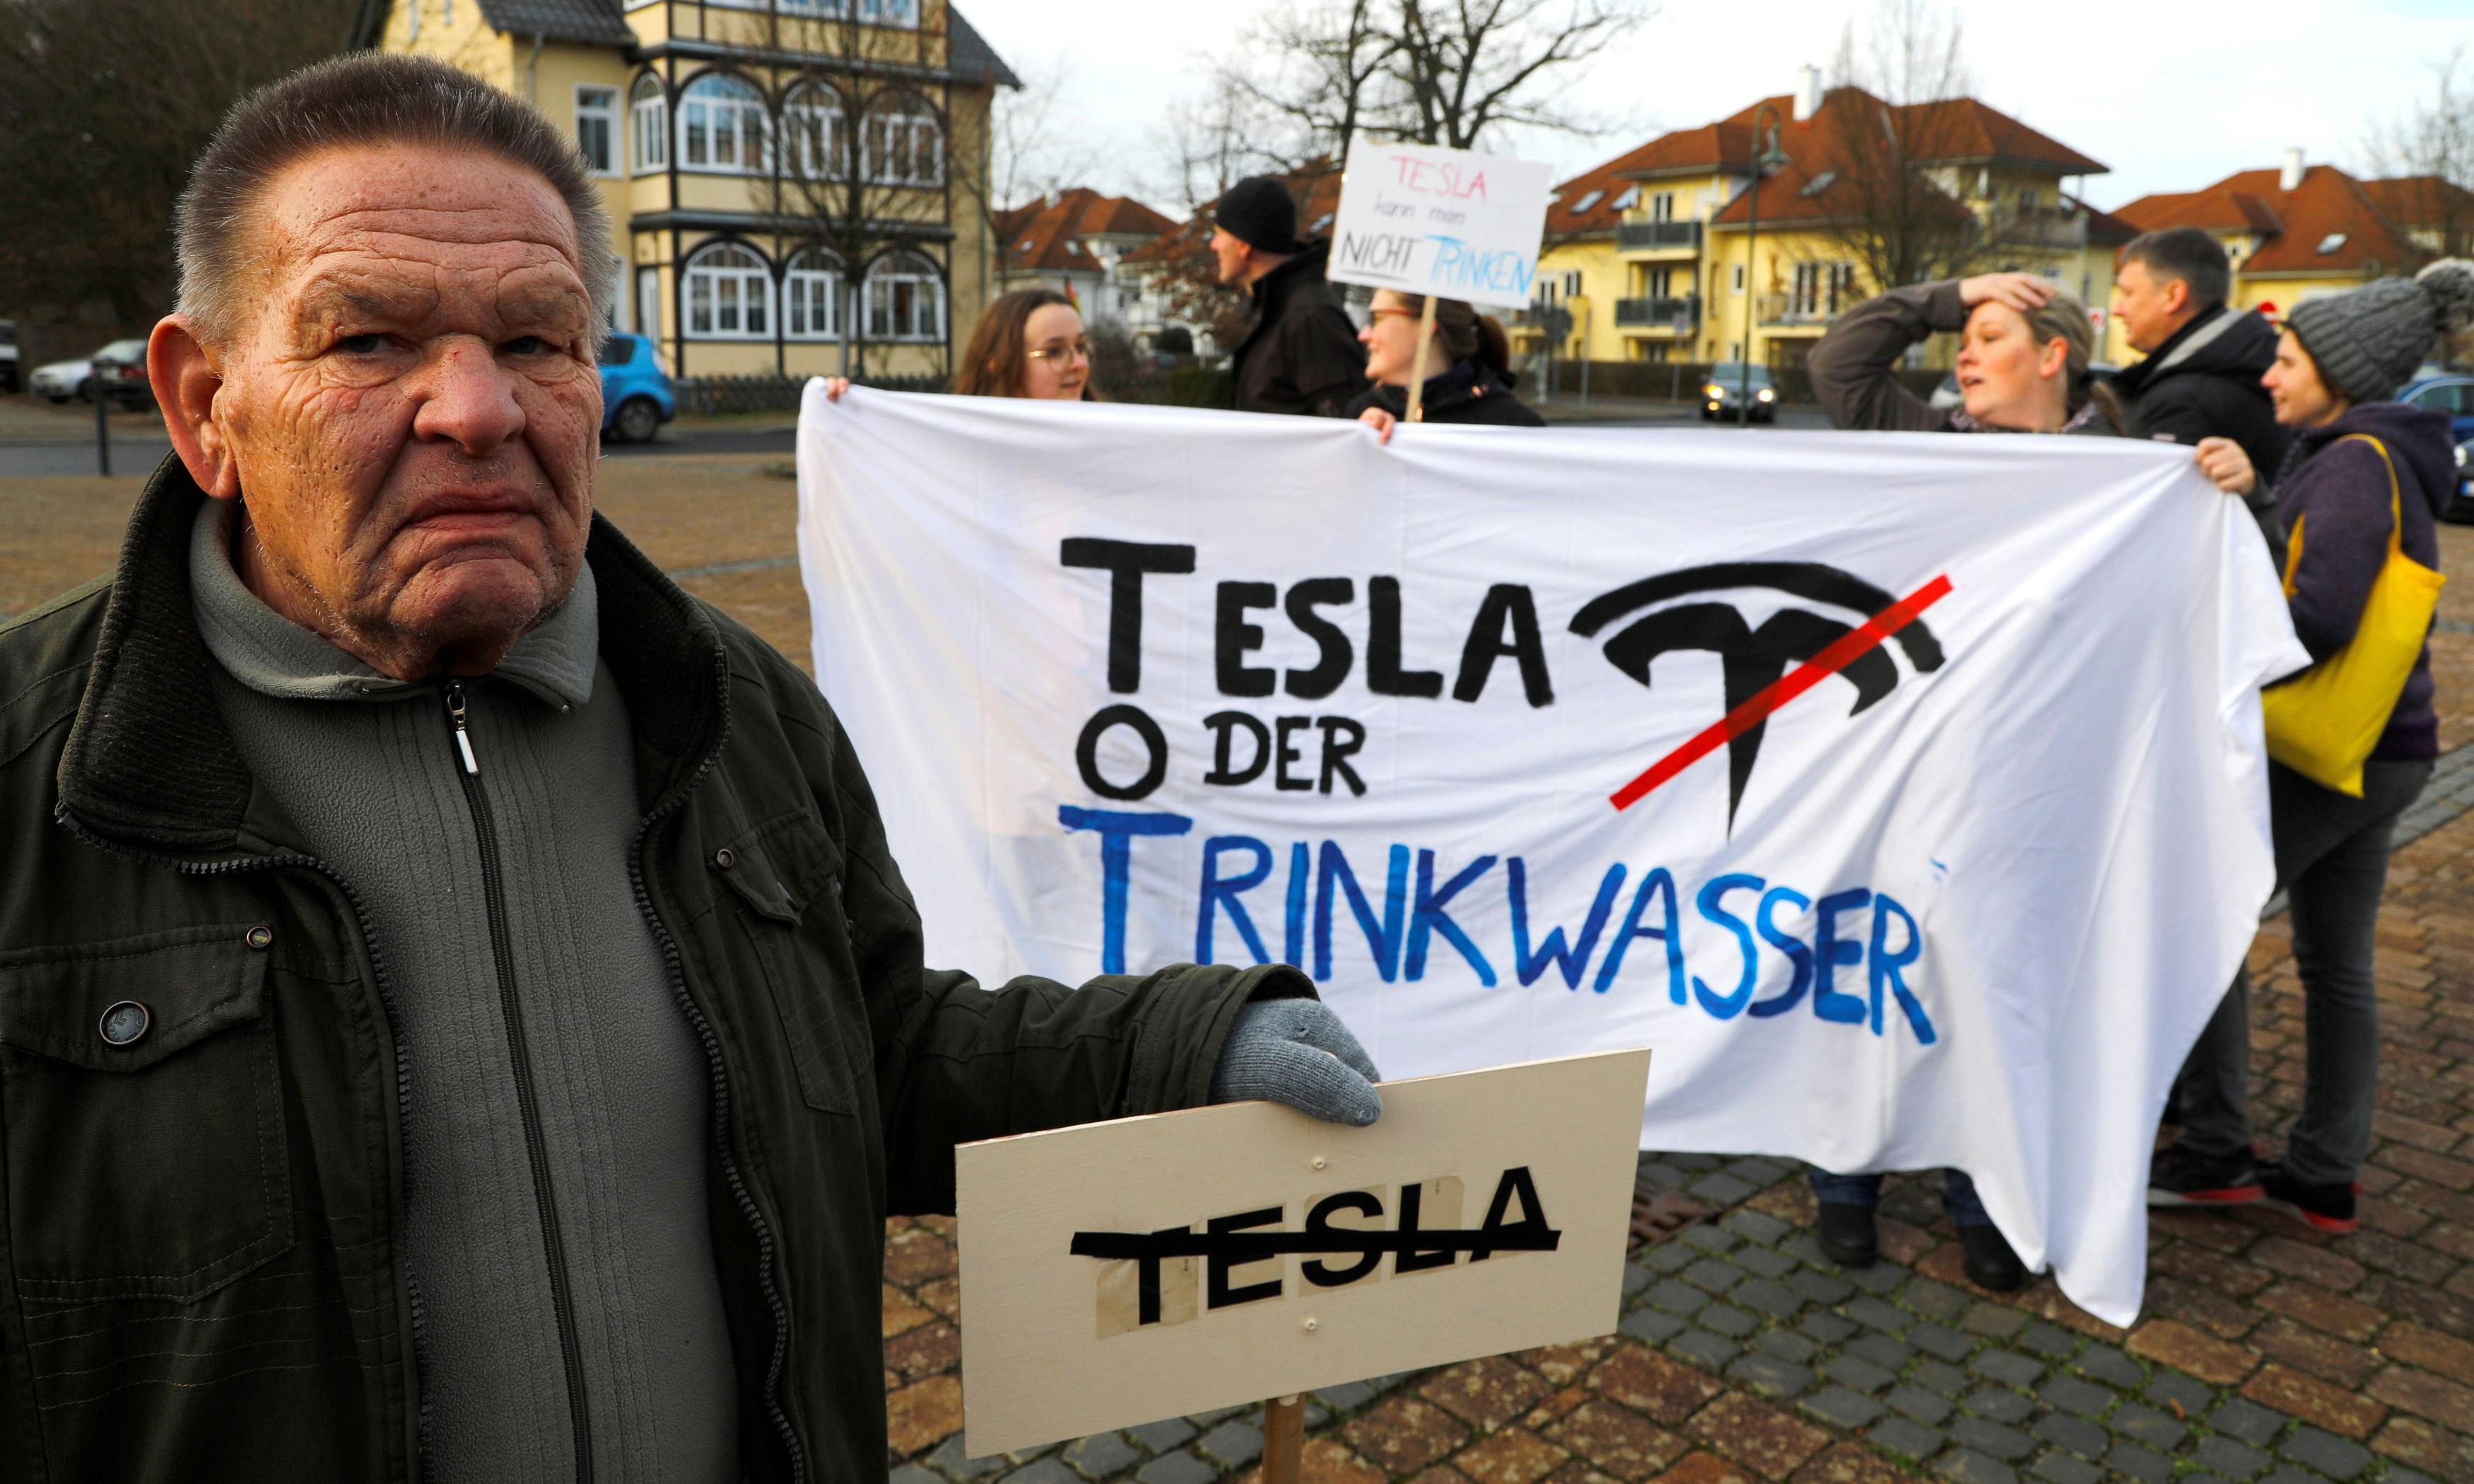 German court orders Tesla to stop felling trees for Gigafactory